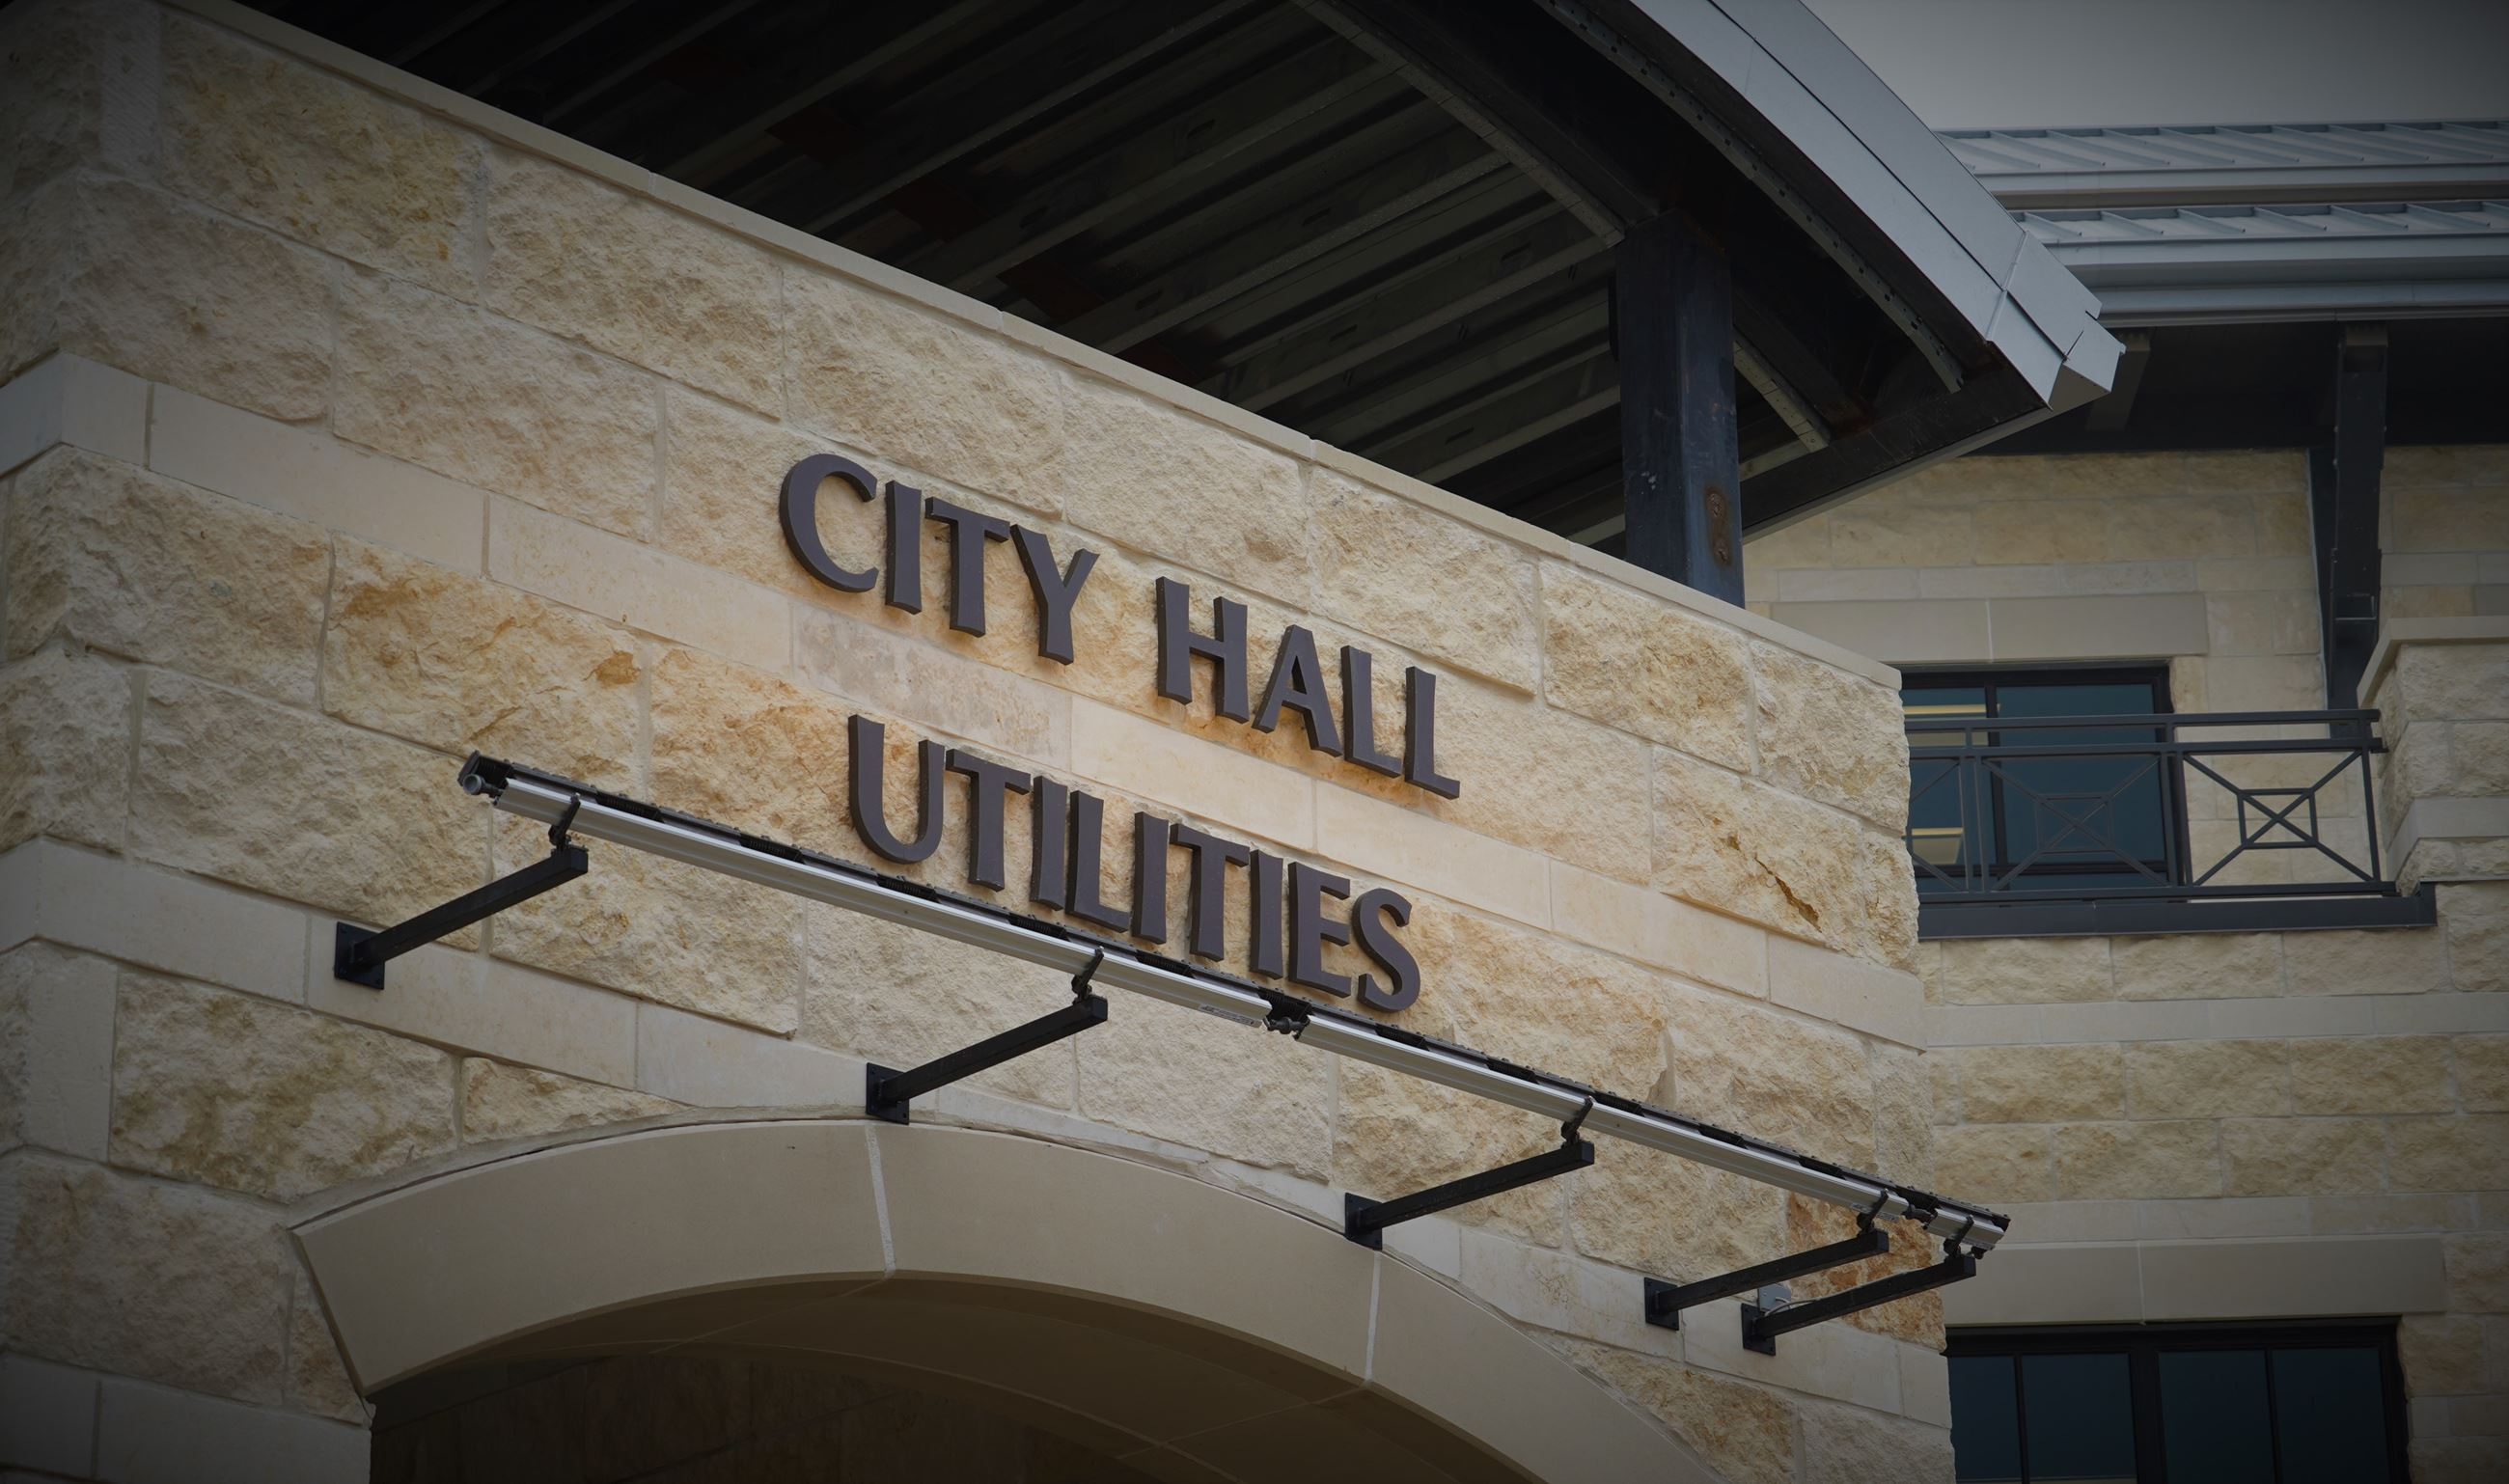 New City Hall and Utilities Signage